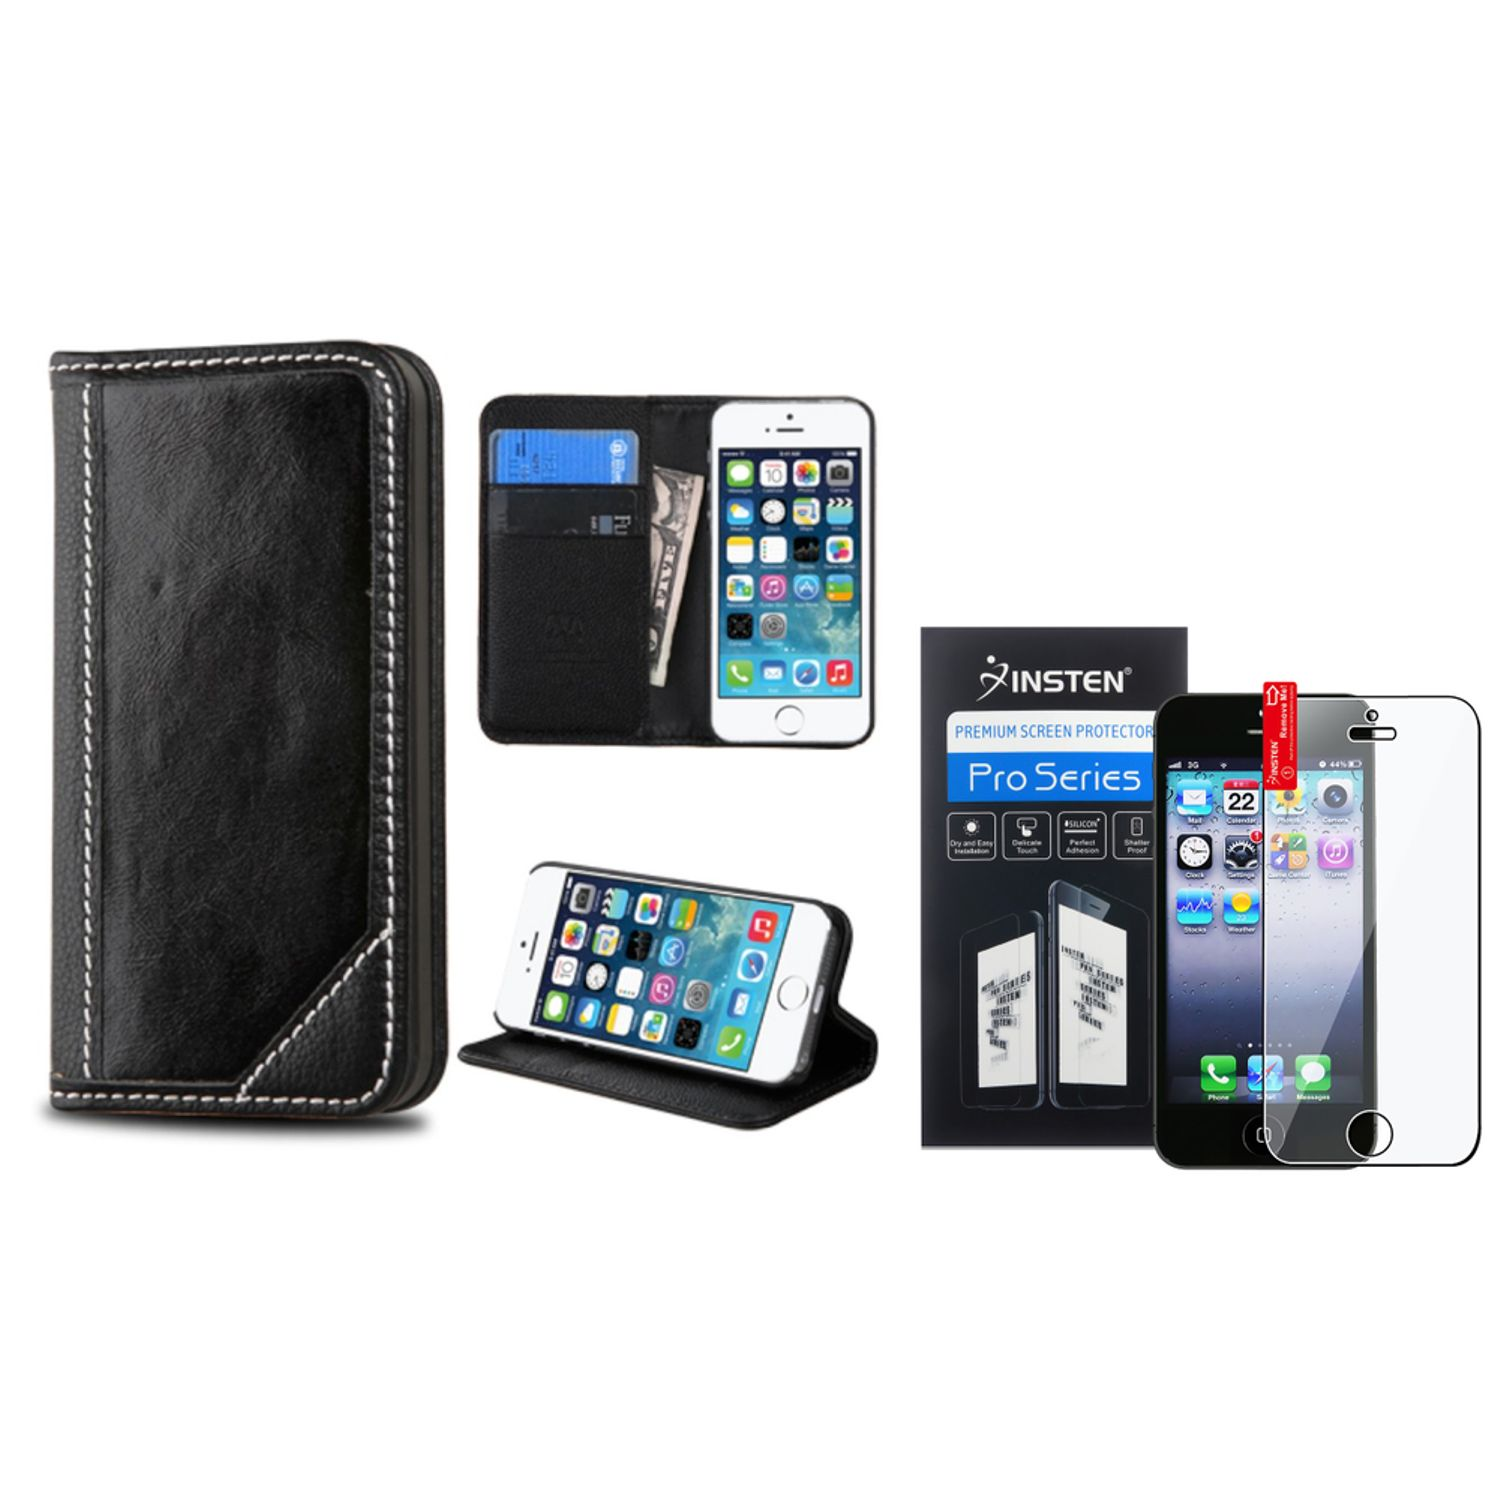 iPhone SE Case Wallet by Insten For iPhone SE 5 5S Leather Card Slot Wallet Stand Leather Cover Case+Protector Black (2-in-1 Accessory Bundle)